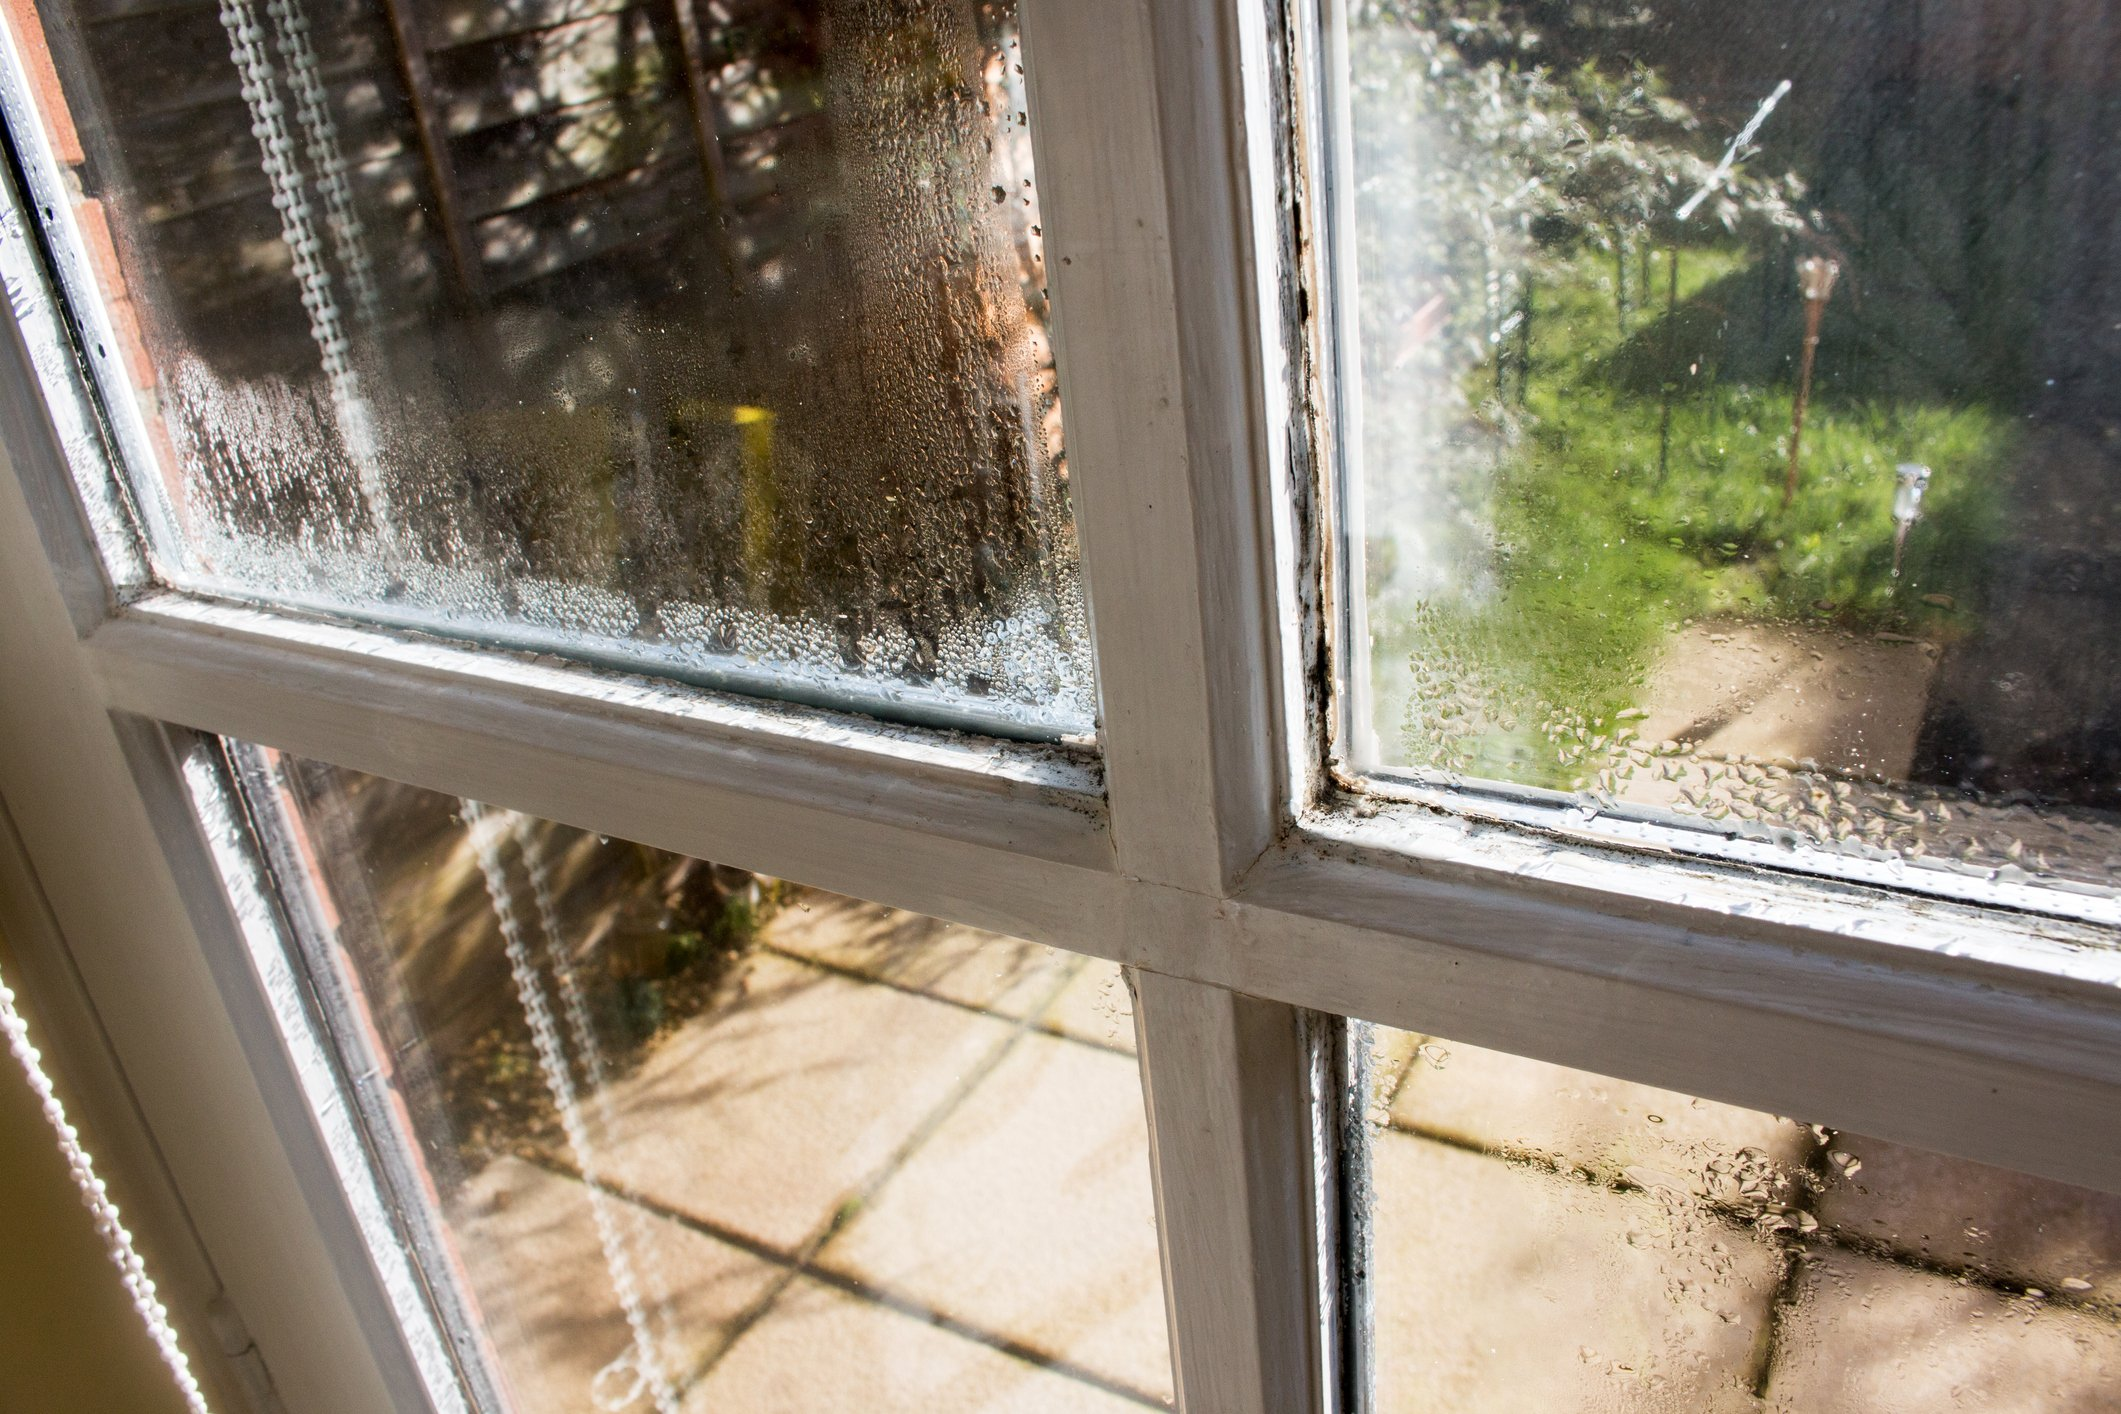 wet window with water drops. damp is attacking the old window. damaged window needs of replacement, with rotting wood and peeling paint